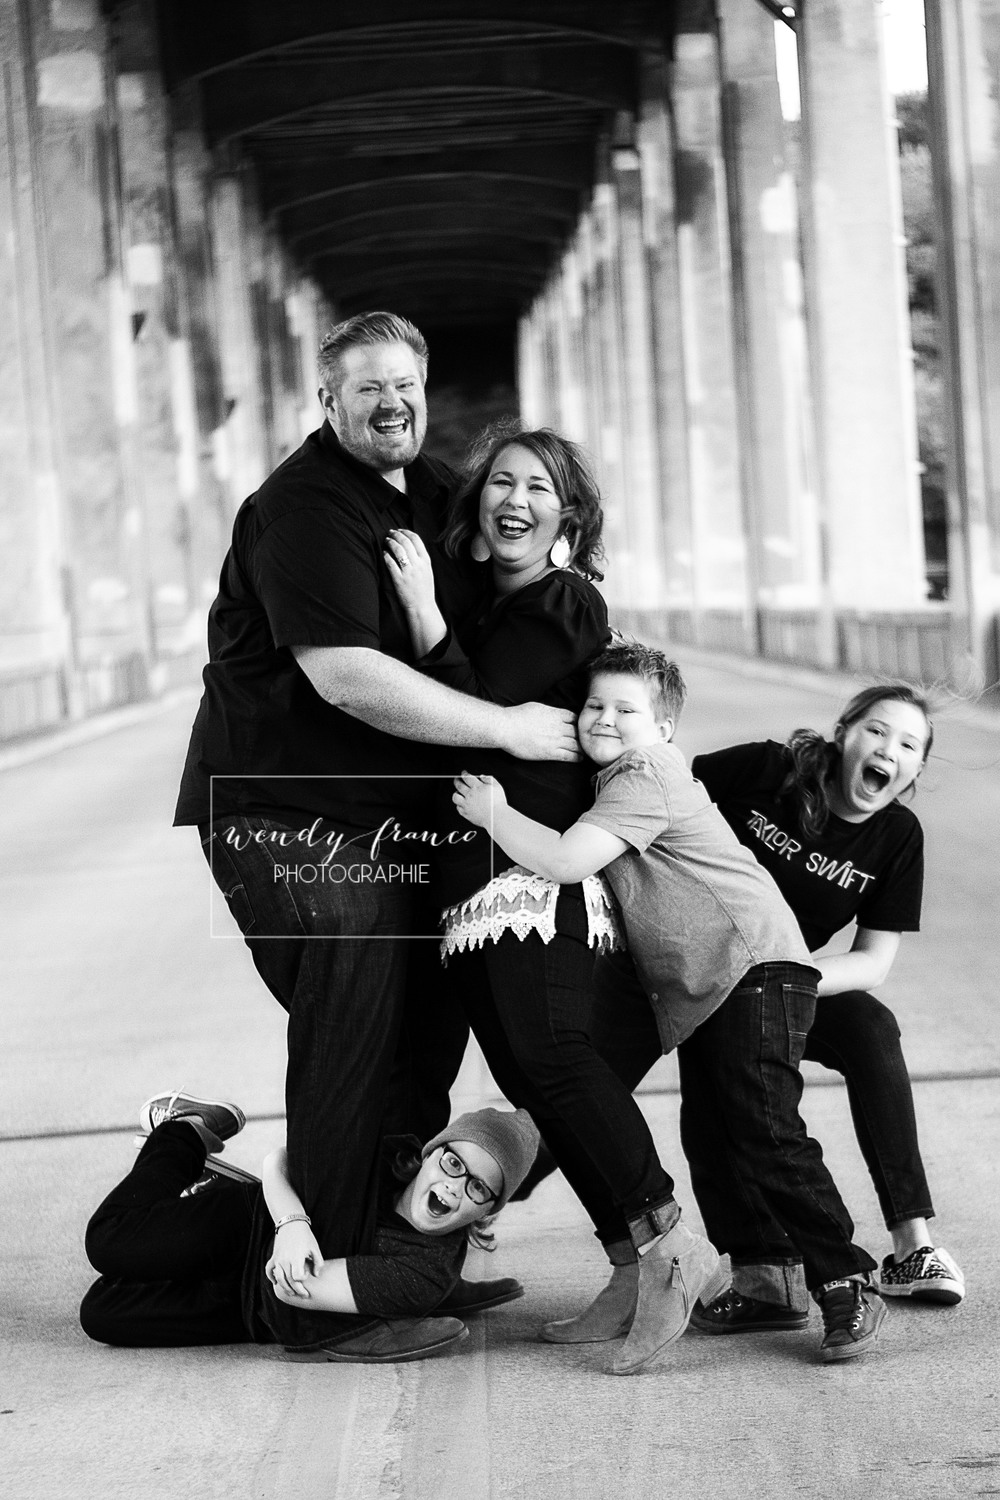 The Voigts were the most fun! Parents allowing their kids to be themselves and spontaneous equals my favorite picture of the year!